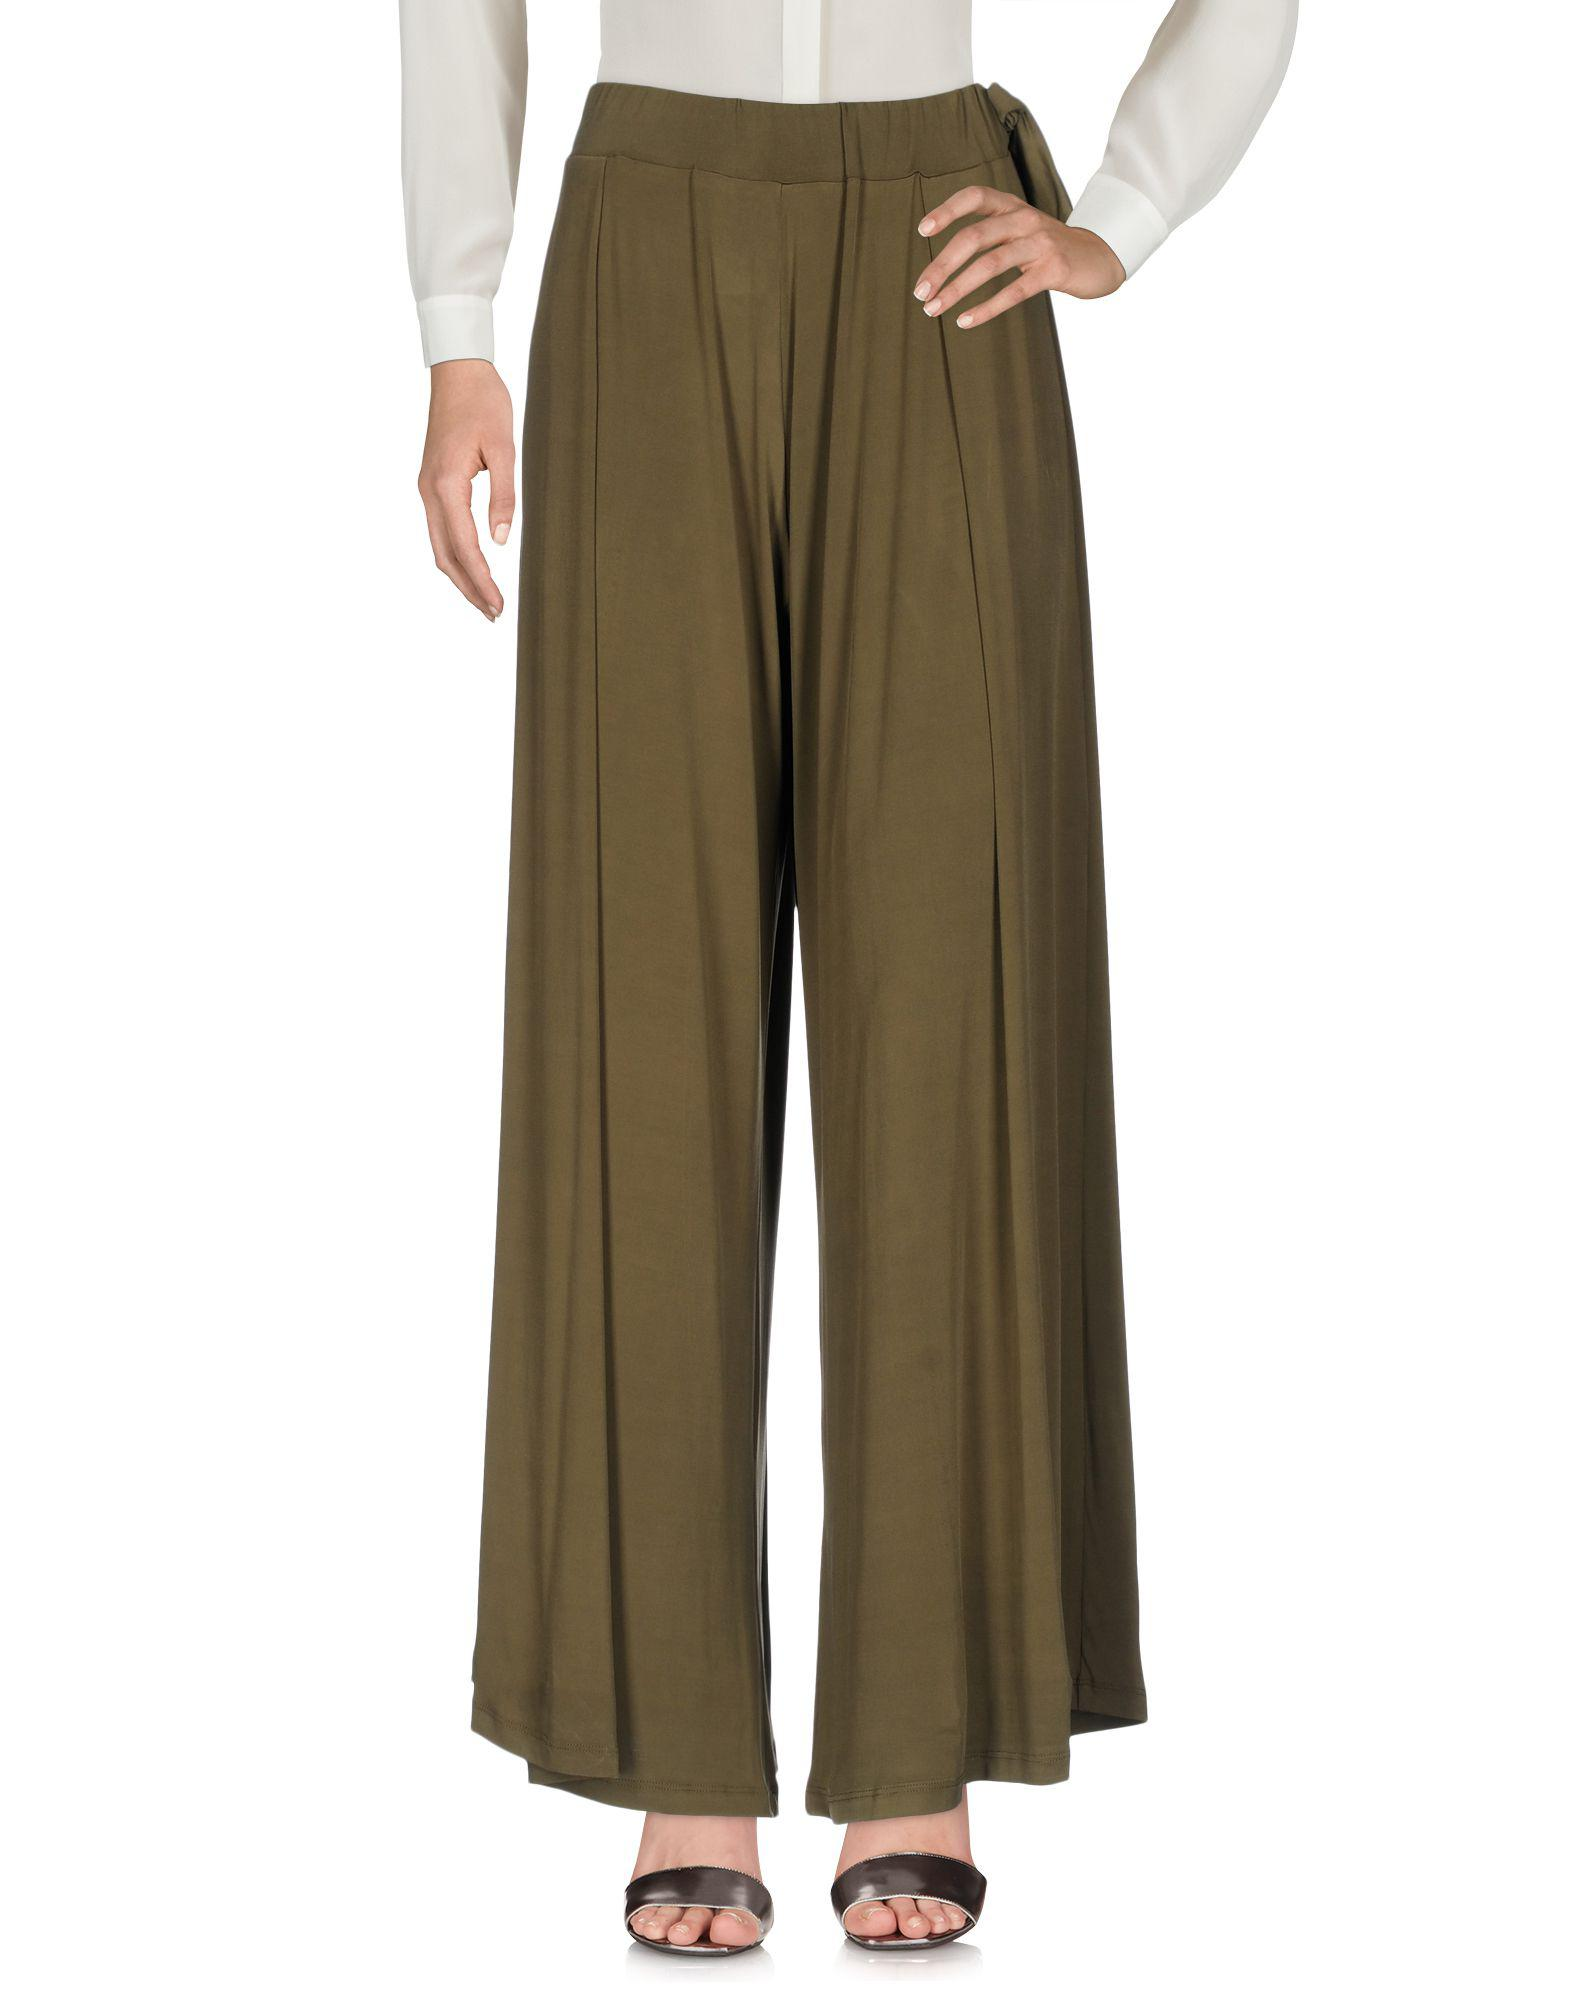 Buy Cheap Manchester Great Sale Get Authentic Cheap Online TROUSERS - Casual trousers Ishikawa Pick A Best Cheap Online J5ClHK